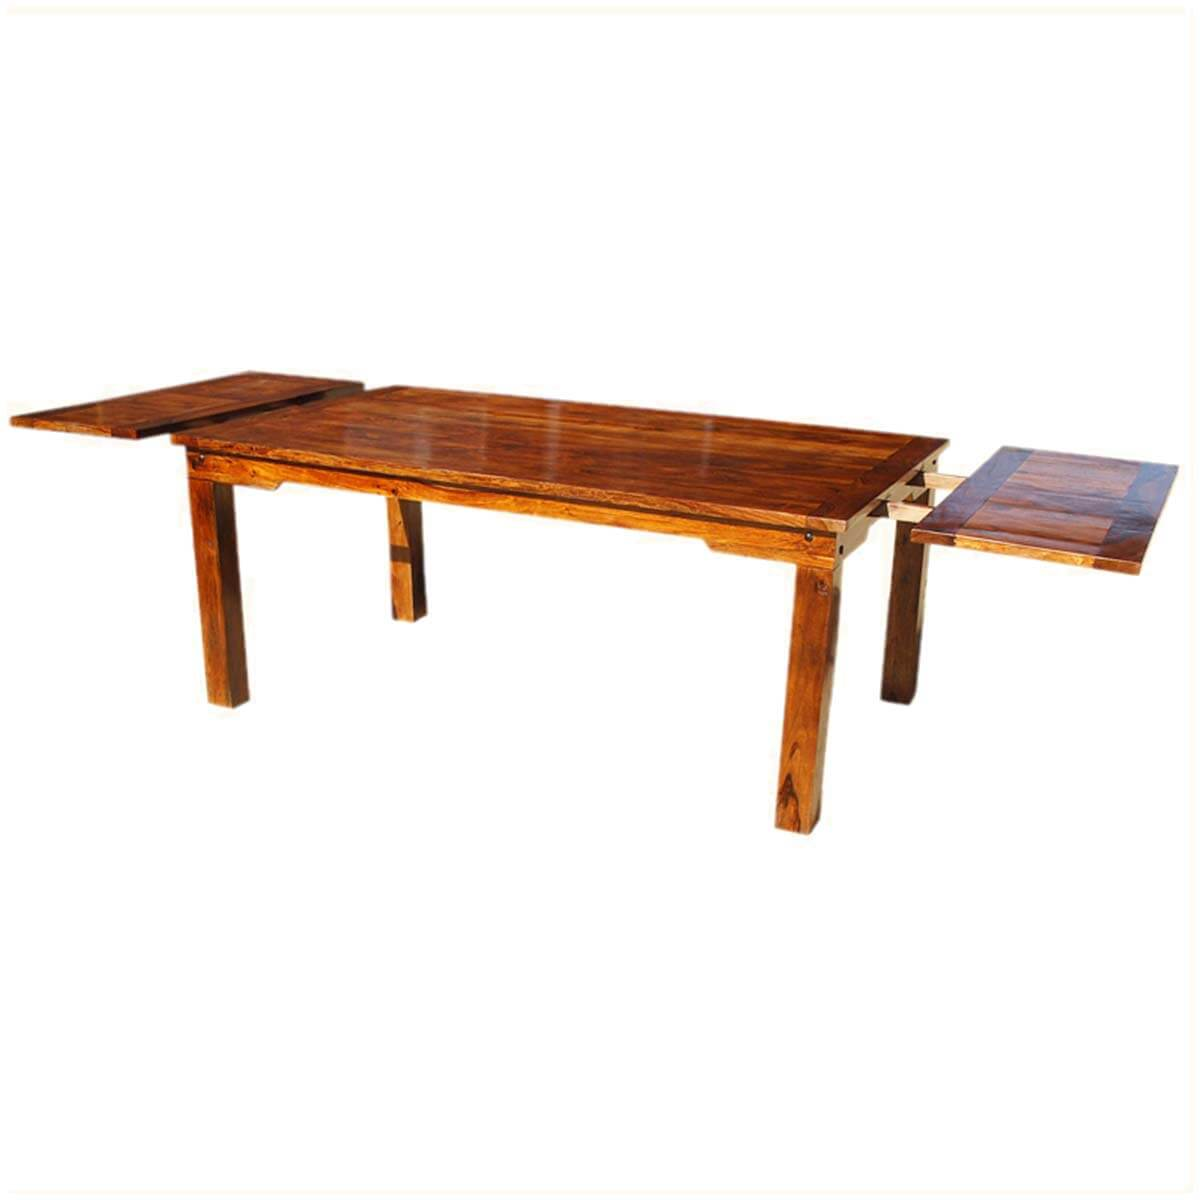 Solid Wood Transitional Rustic Dining Table W Extensions